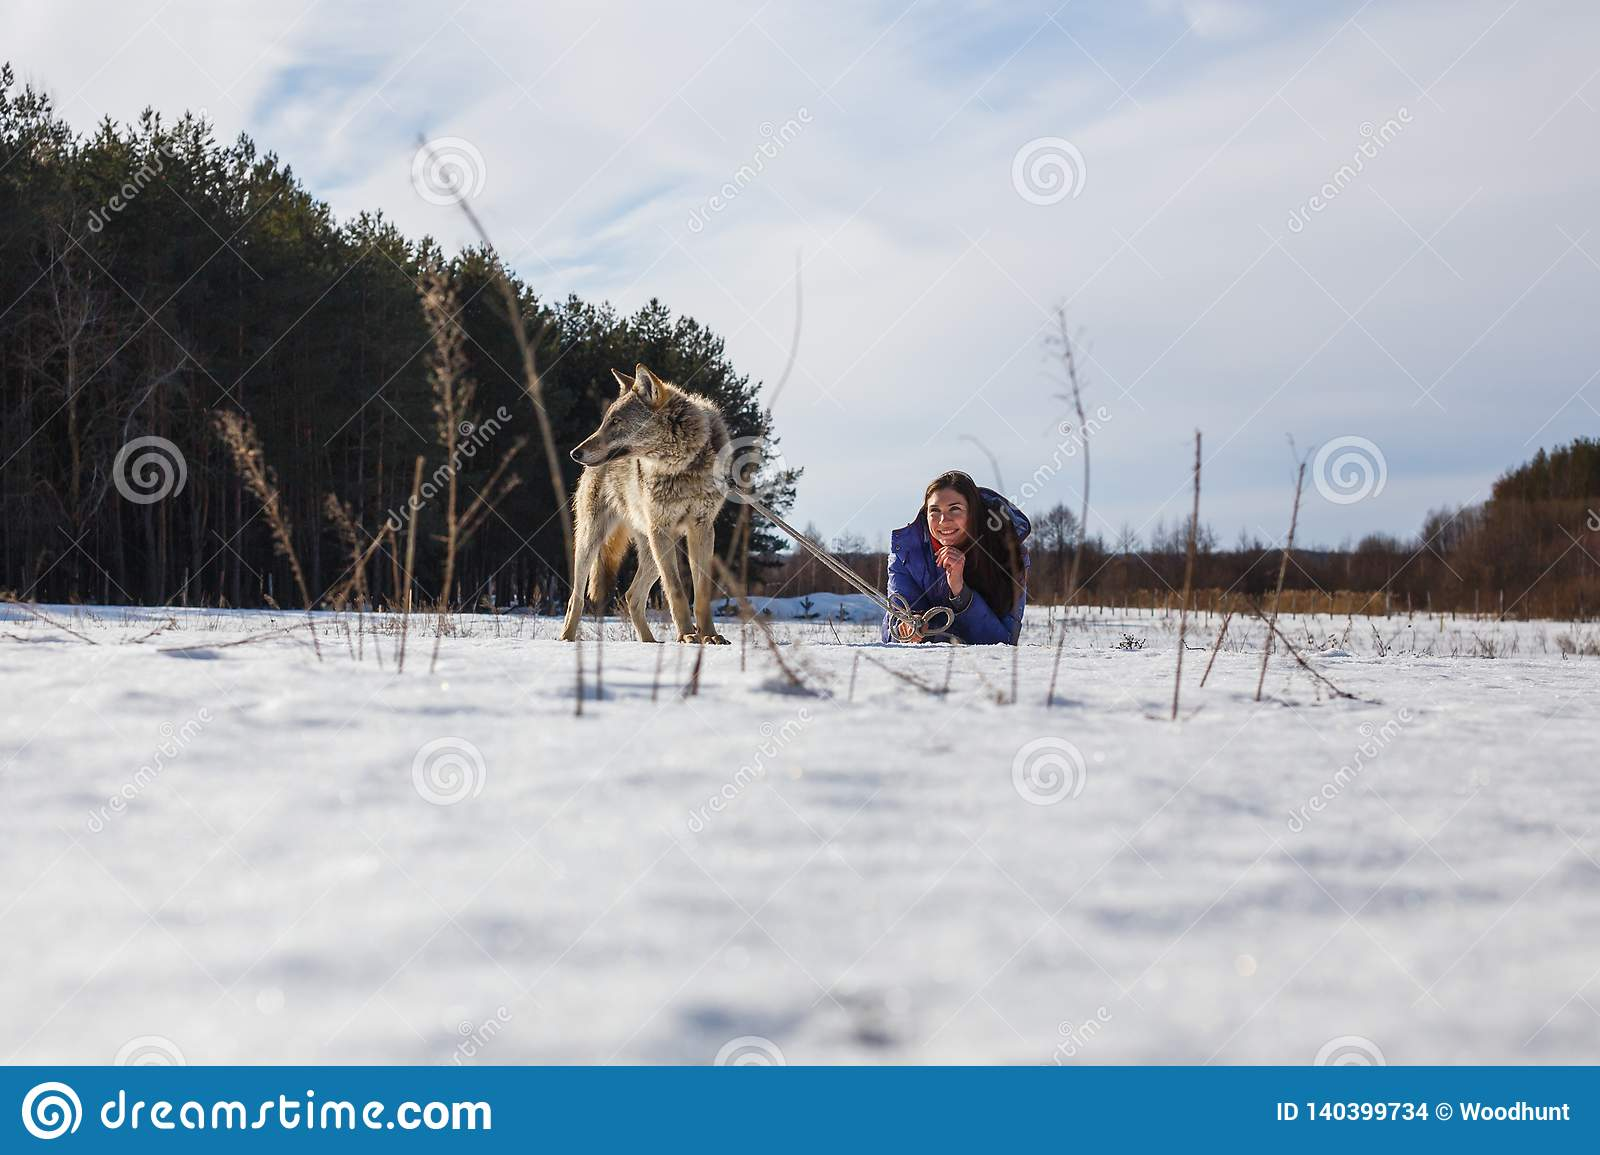 A girl, a wolf and two canine greyhounds playing in the field in winter in the snow